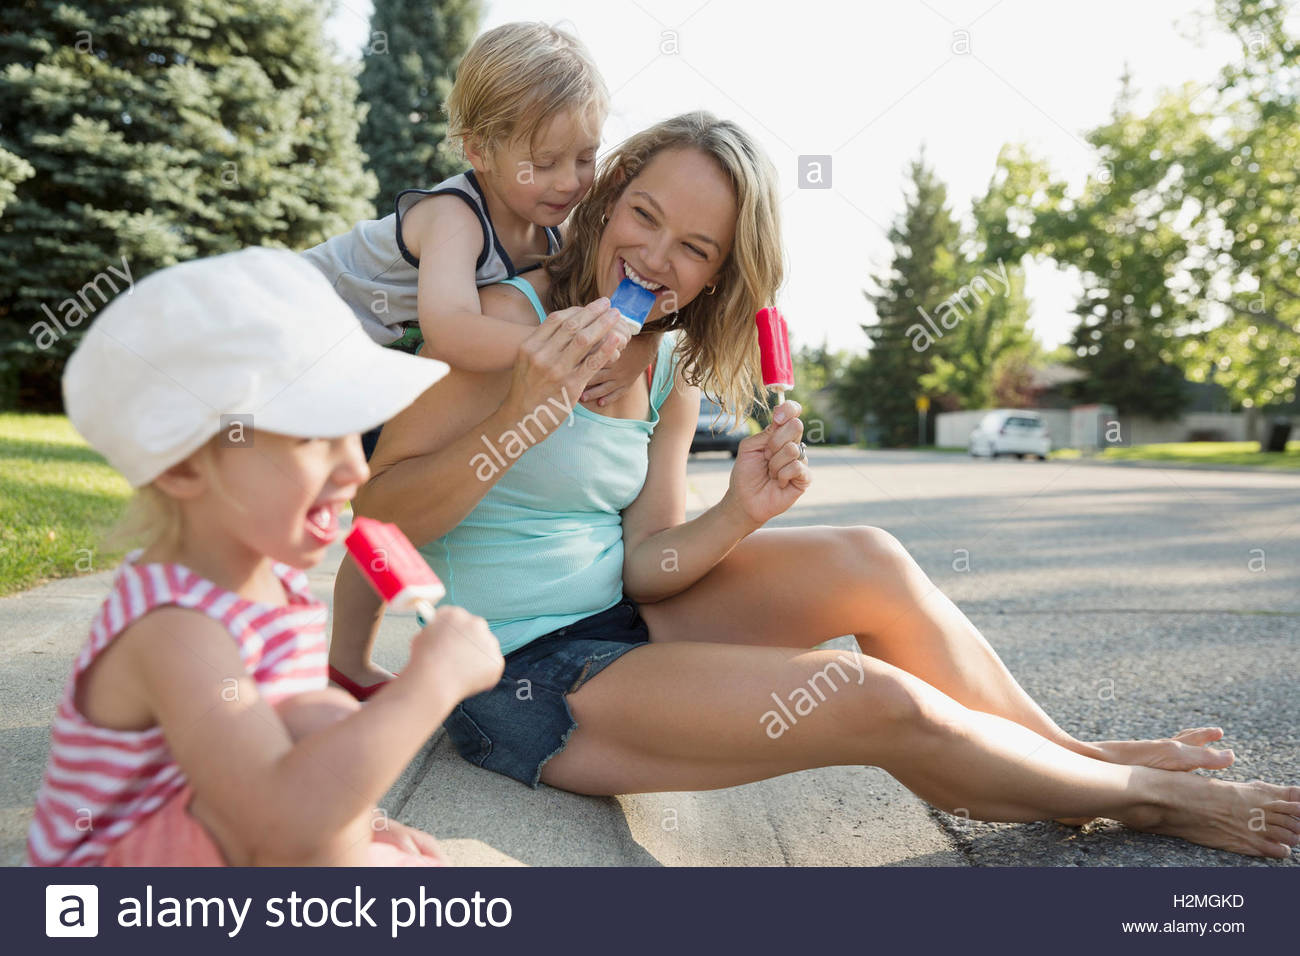 Family eating flavored ice on curb - Stock Image